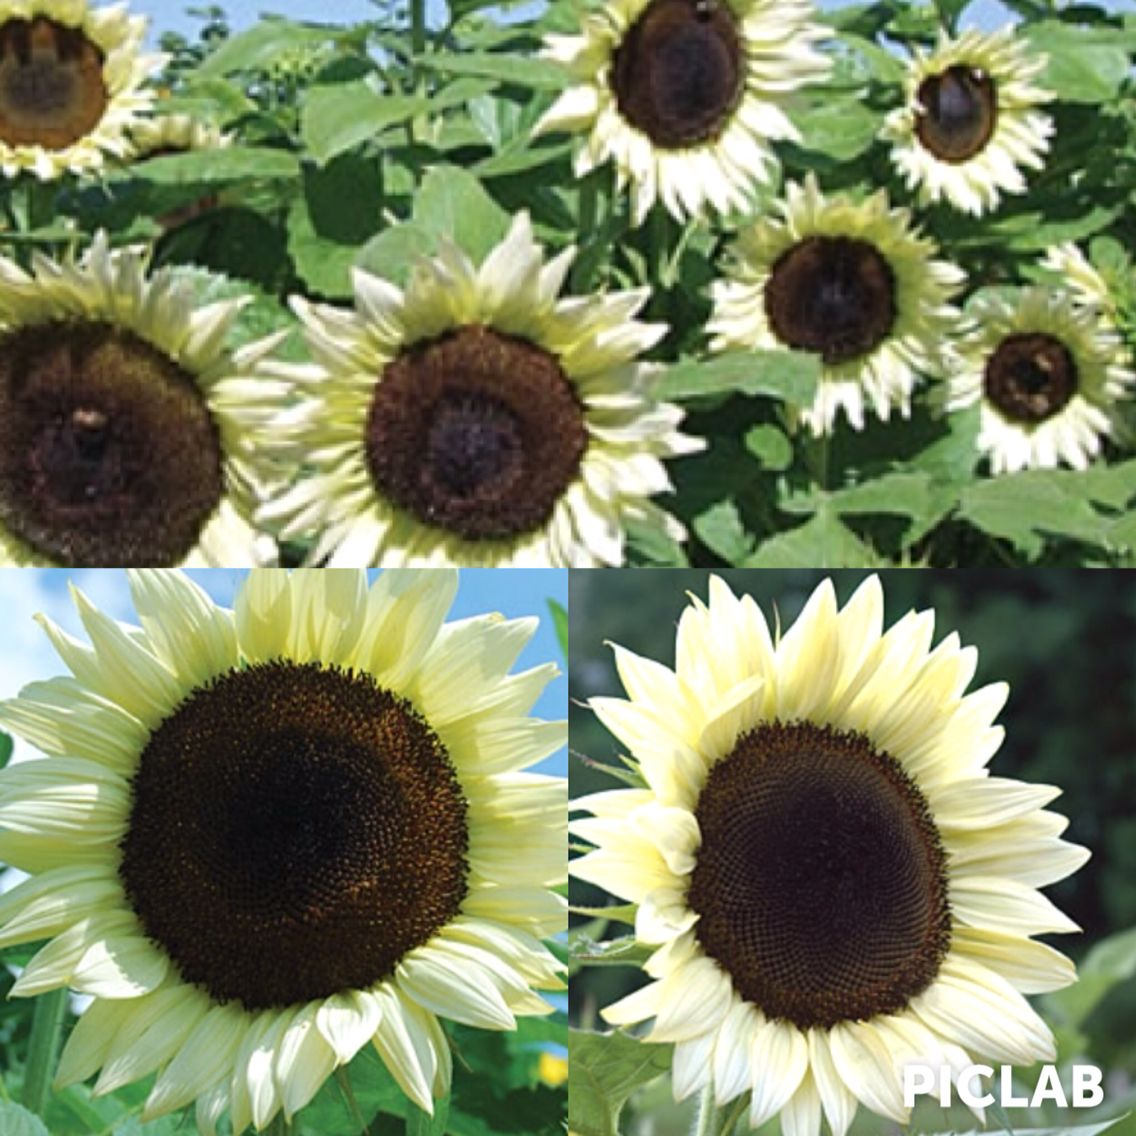 White sunflowers!! Yay!! I sooo would love to incorporate these into my wedding. A little reminder for my grandma:-)